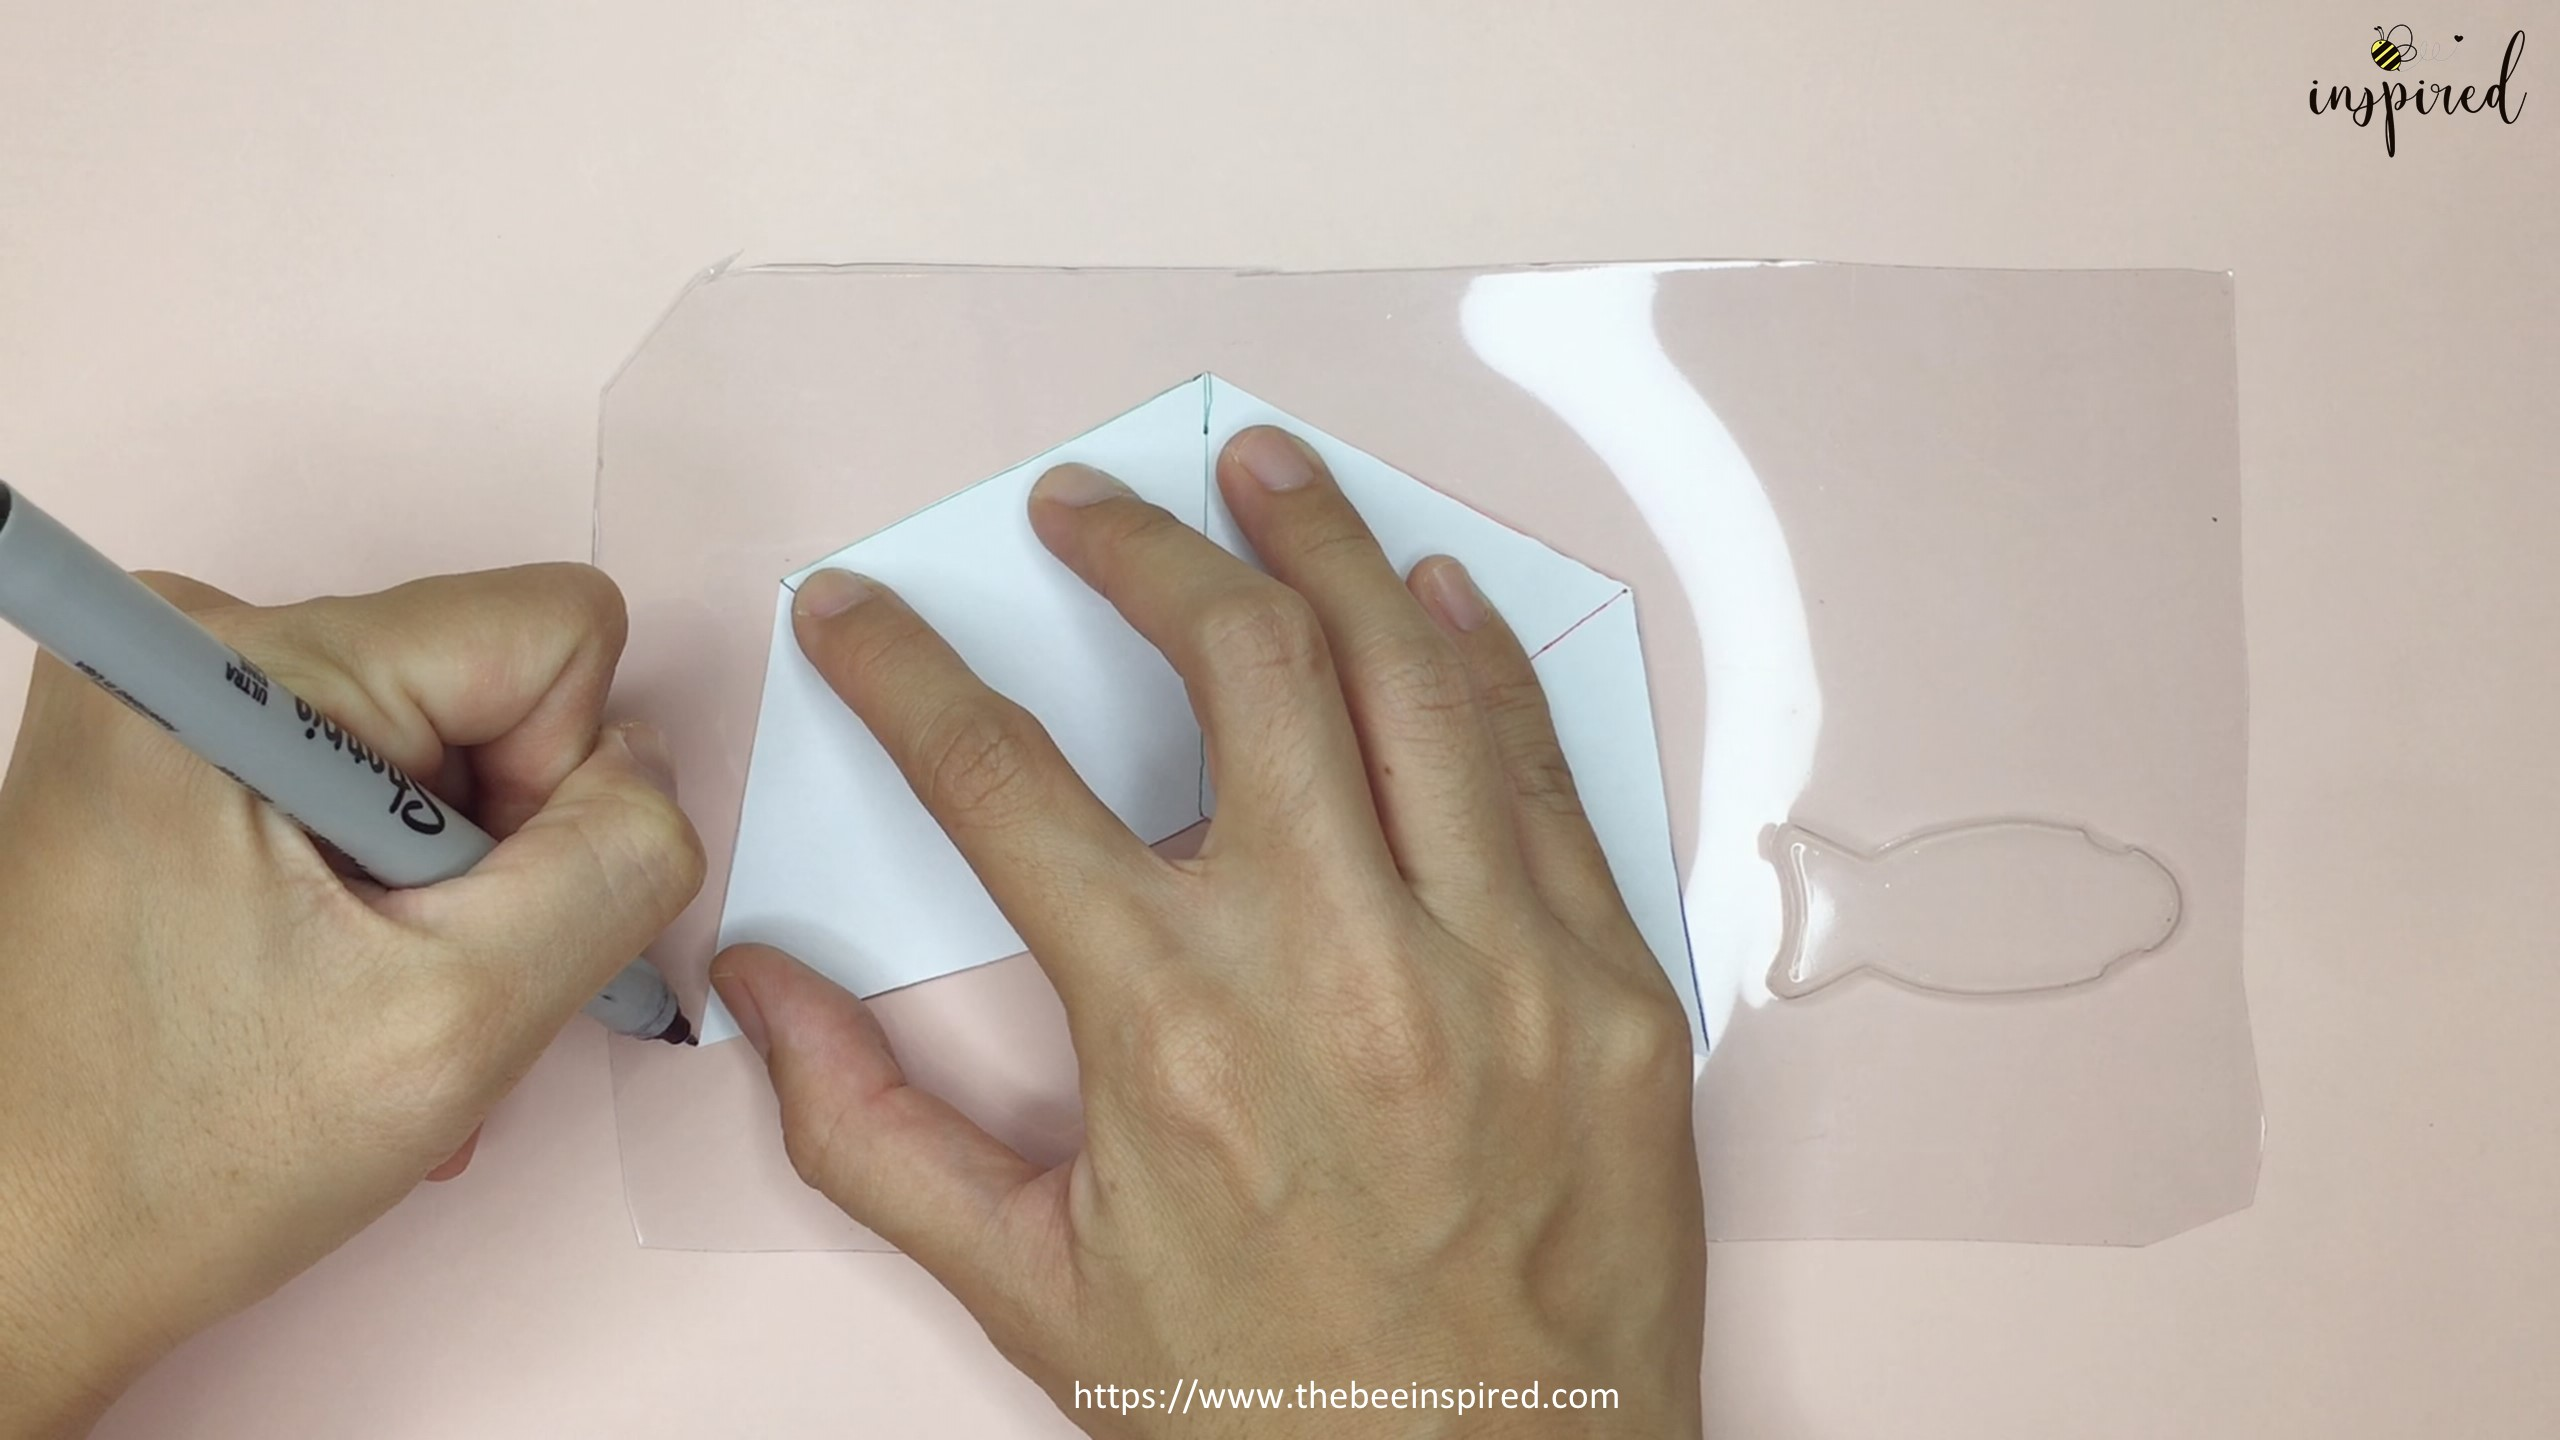 How To Make 3D Hologram Projector From Smartphone and Plastic Box_10